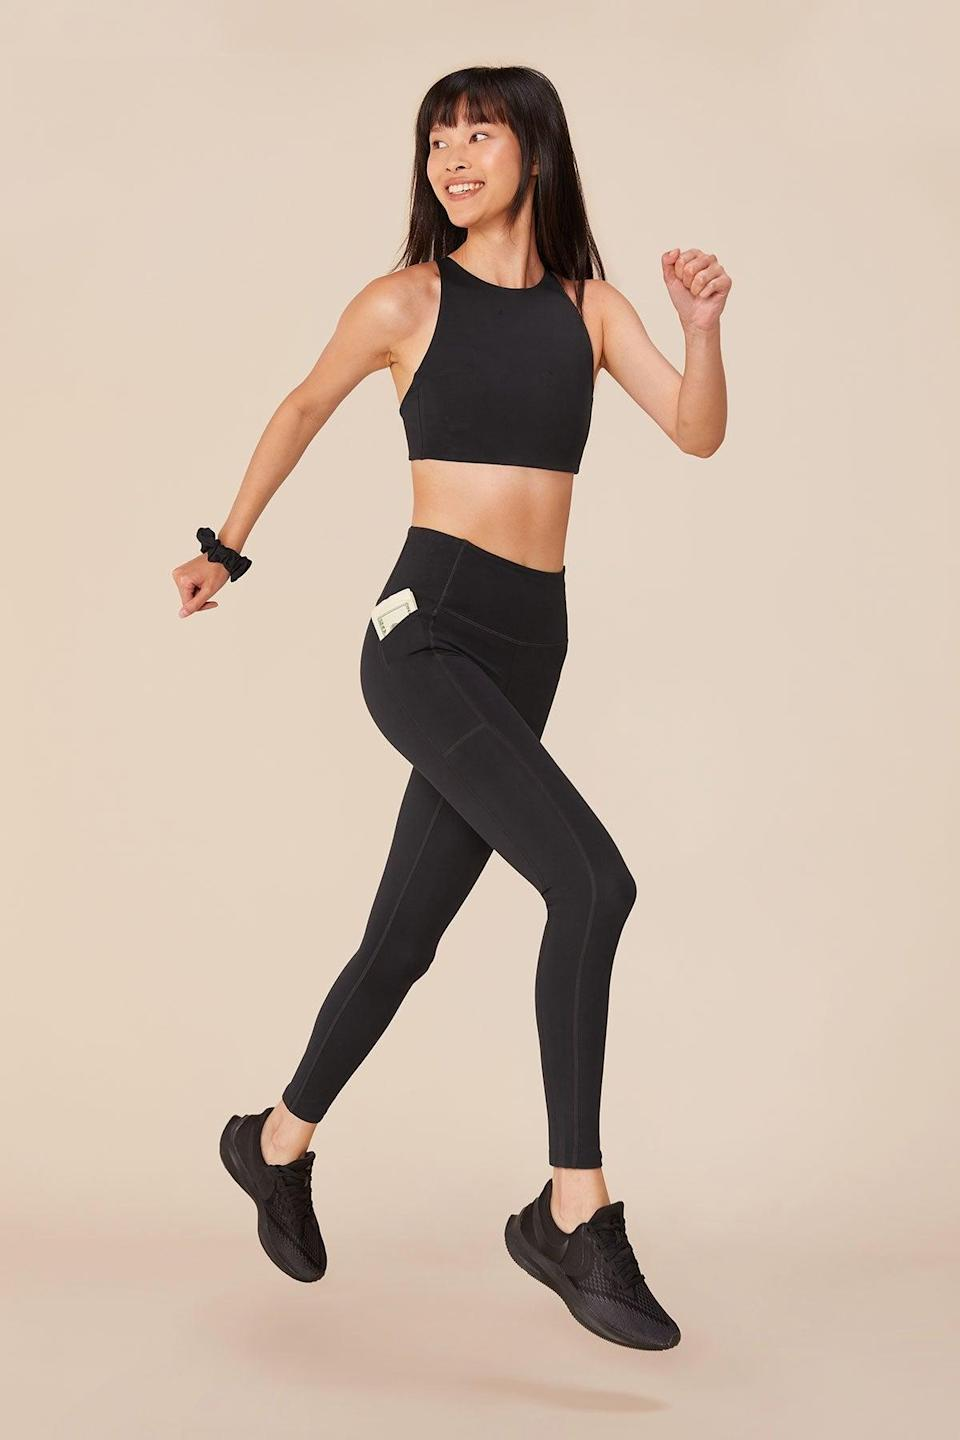 """<br><br><strong>Girlfriend Collective</strong> Black High-Rise Pocket Legging, $, available at <a href=""""https://go.skimresources.com/?id=30283X879131&url=https%3A%2F%2Ffave.co%2F34u1nzj"""" rel=""""nofollow noopener"""" target=""""_blank"""" data-ylk=""""slk:Girlfriend Collective"""" class=""""link rapid-noclick-resp"""">Girlfriend Collective</a>"""